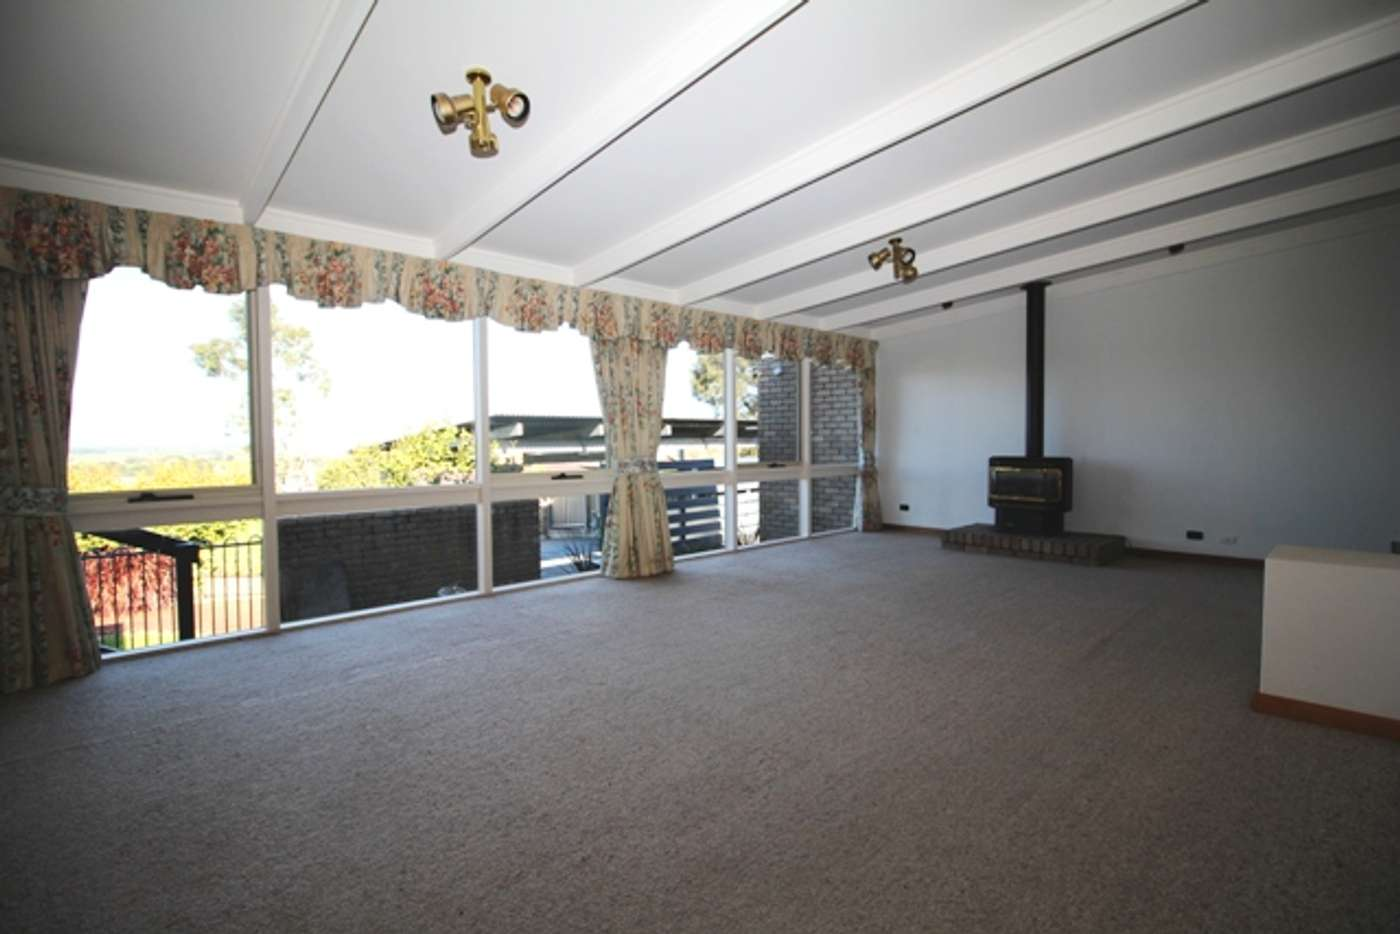 Seventh view of Homely house listing, 20 Blume Terrace, Mount Gambier SA 5290